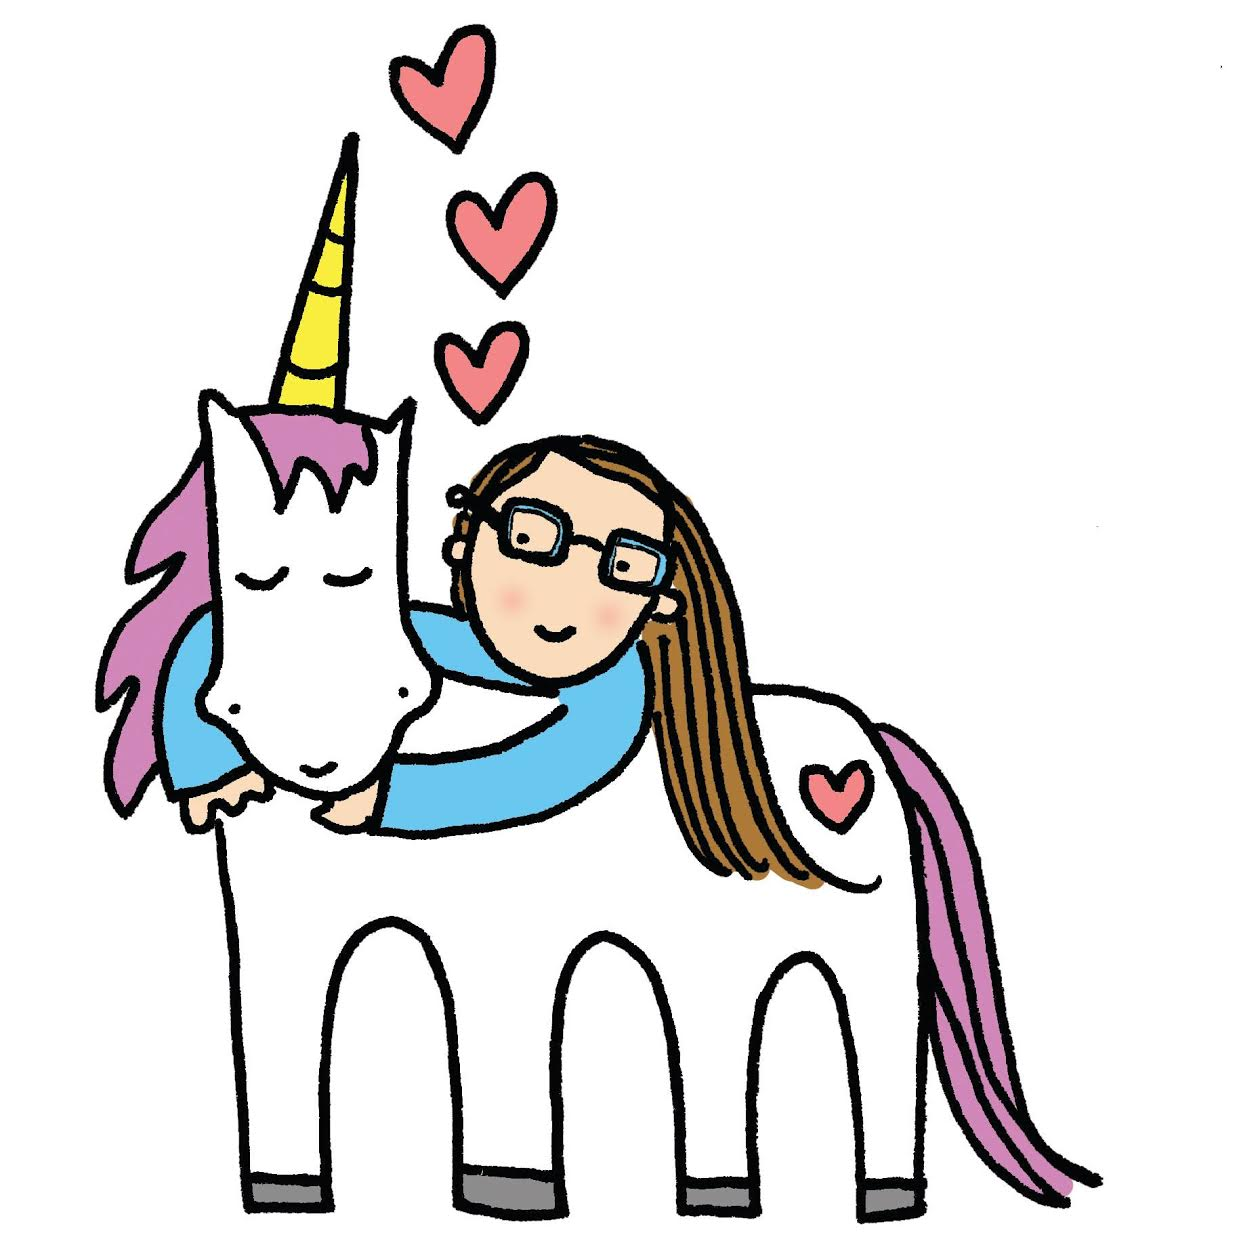 jessie-moore-unicorn-love.jpg